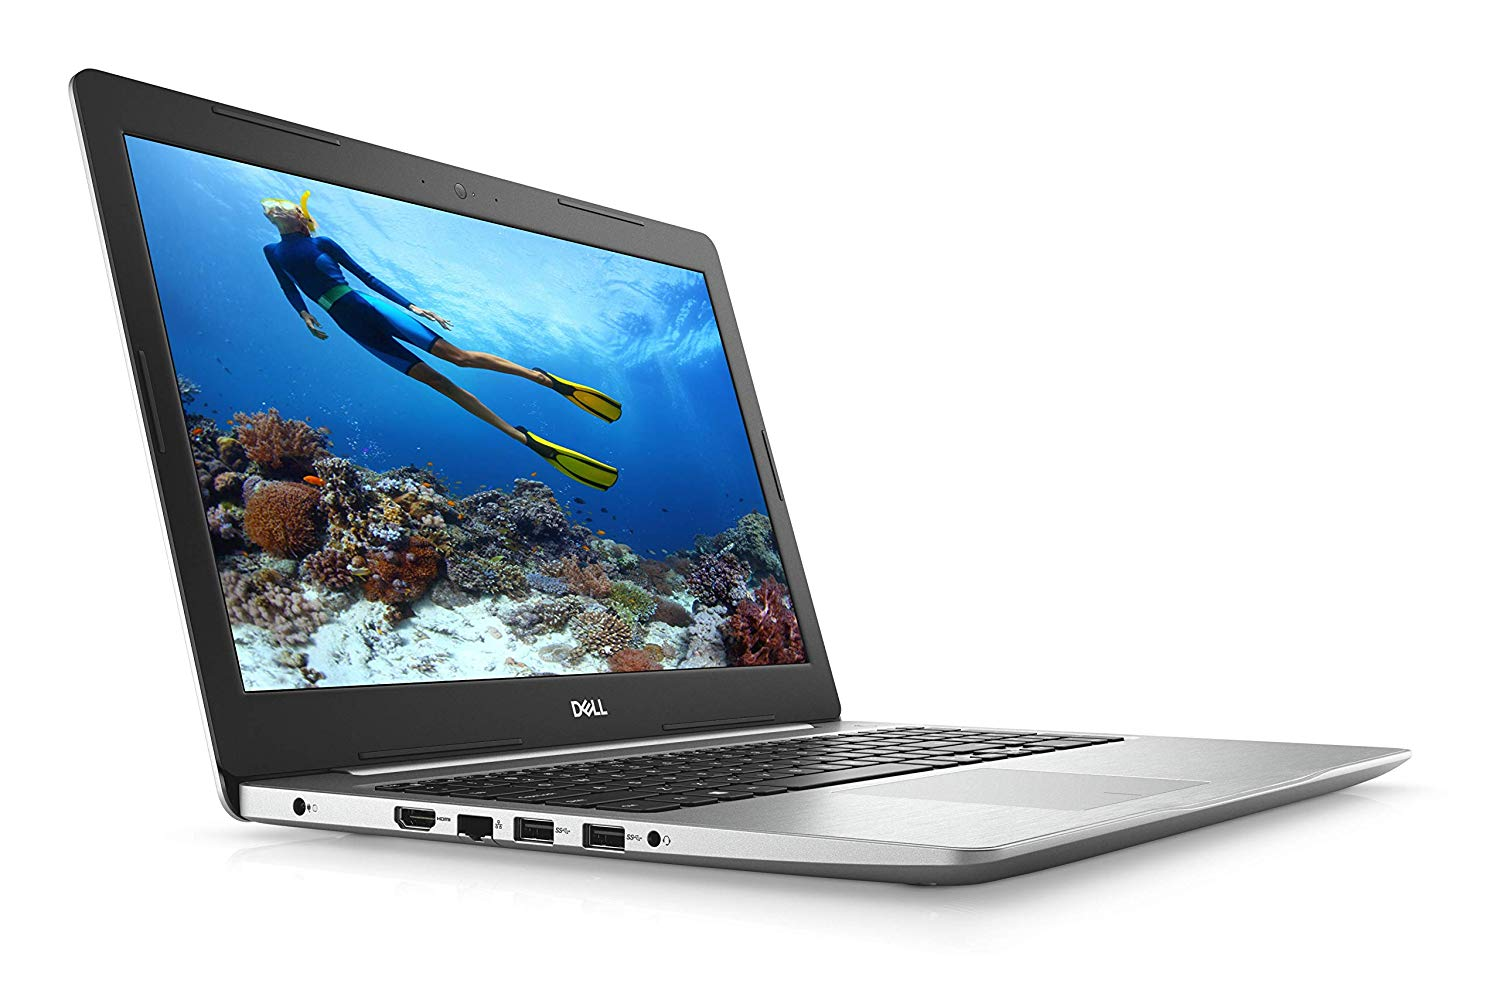 Dell Inspiron 15 5000 Laptop For Just 163 299 99 In Early